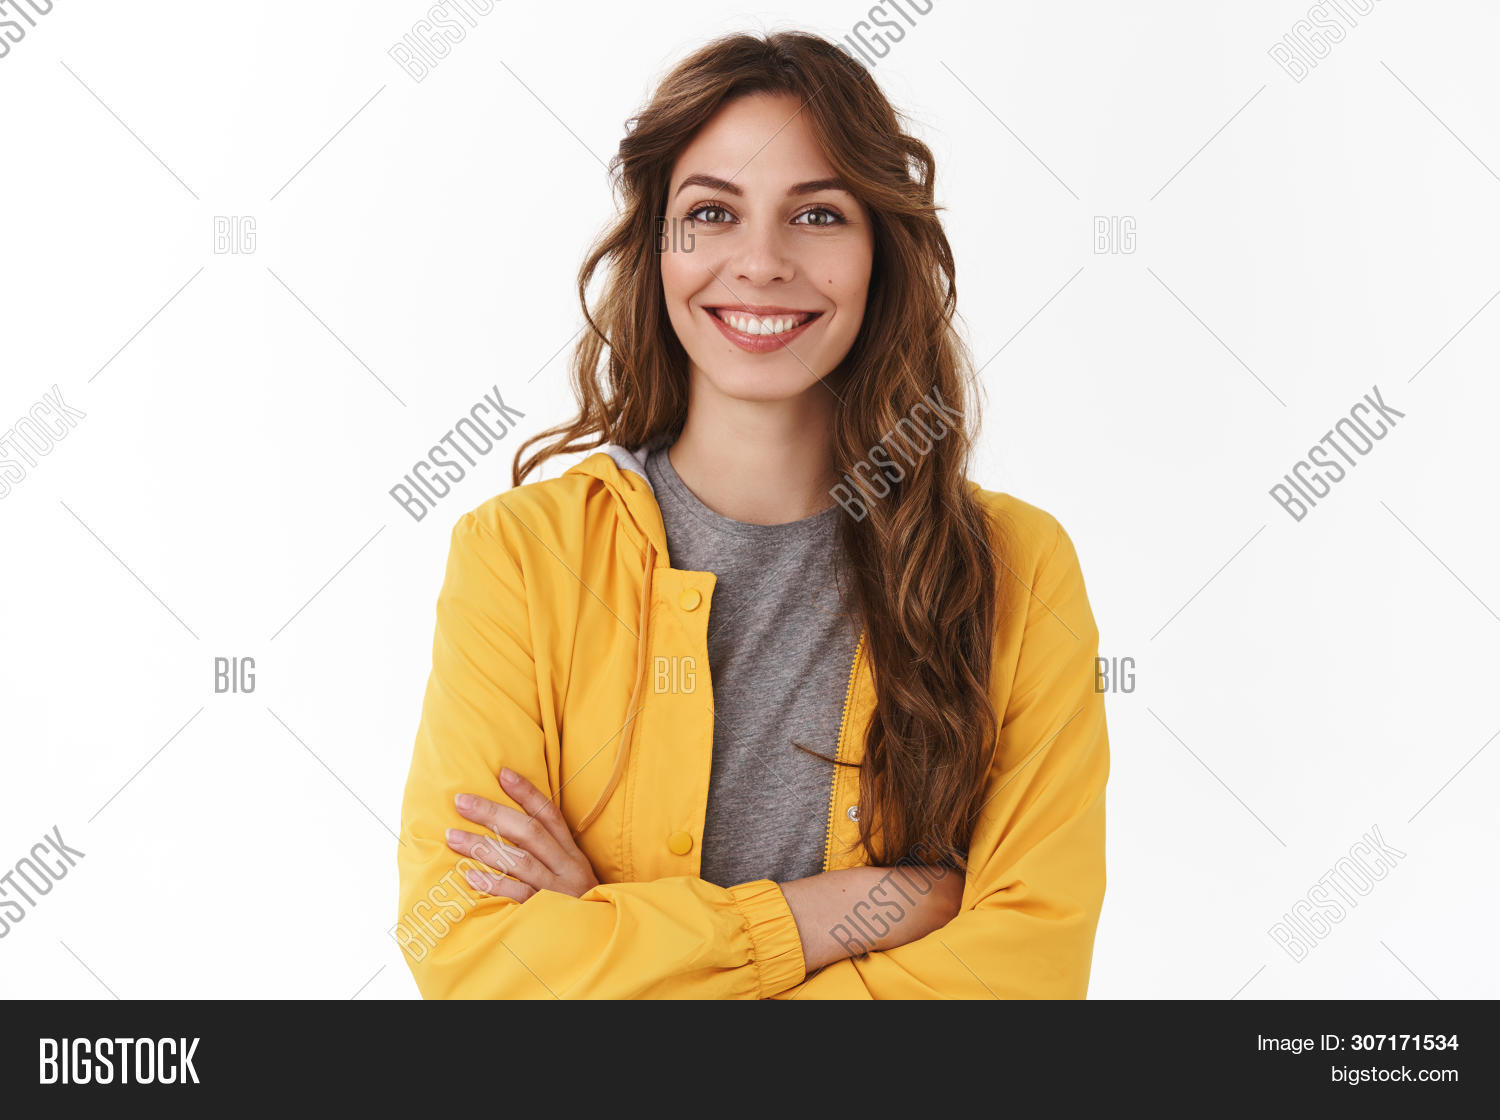 Cheerful young new attractive female employee ready help energized look upbeat confident camera cross arms chest self-assured smiling toothy aim bright successful future, standing white background